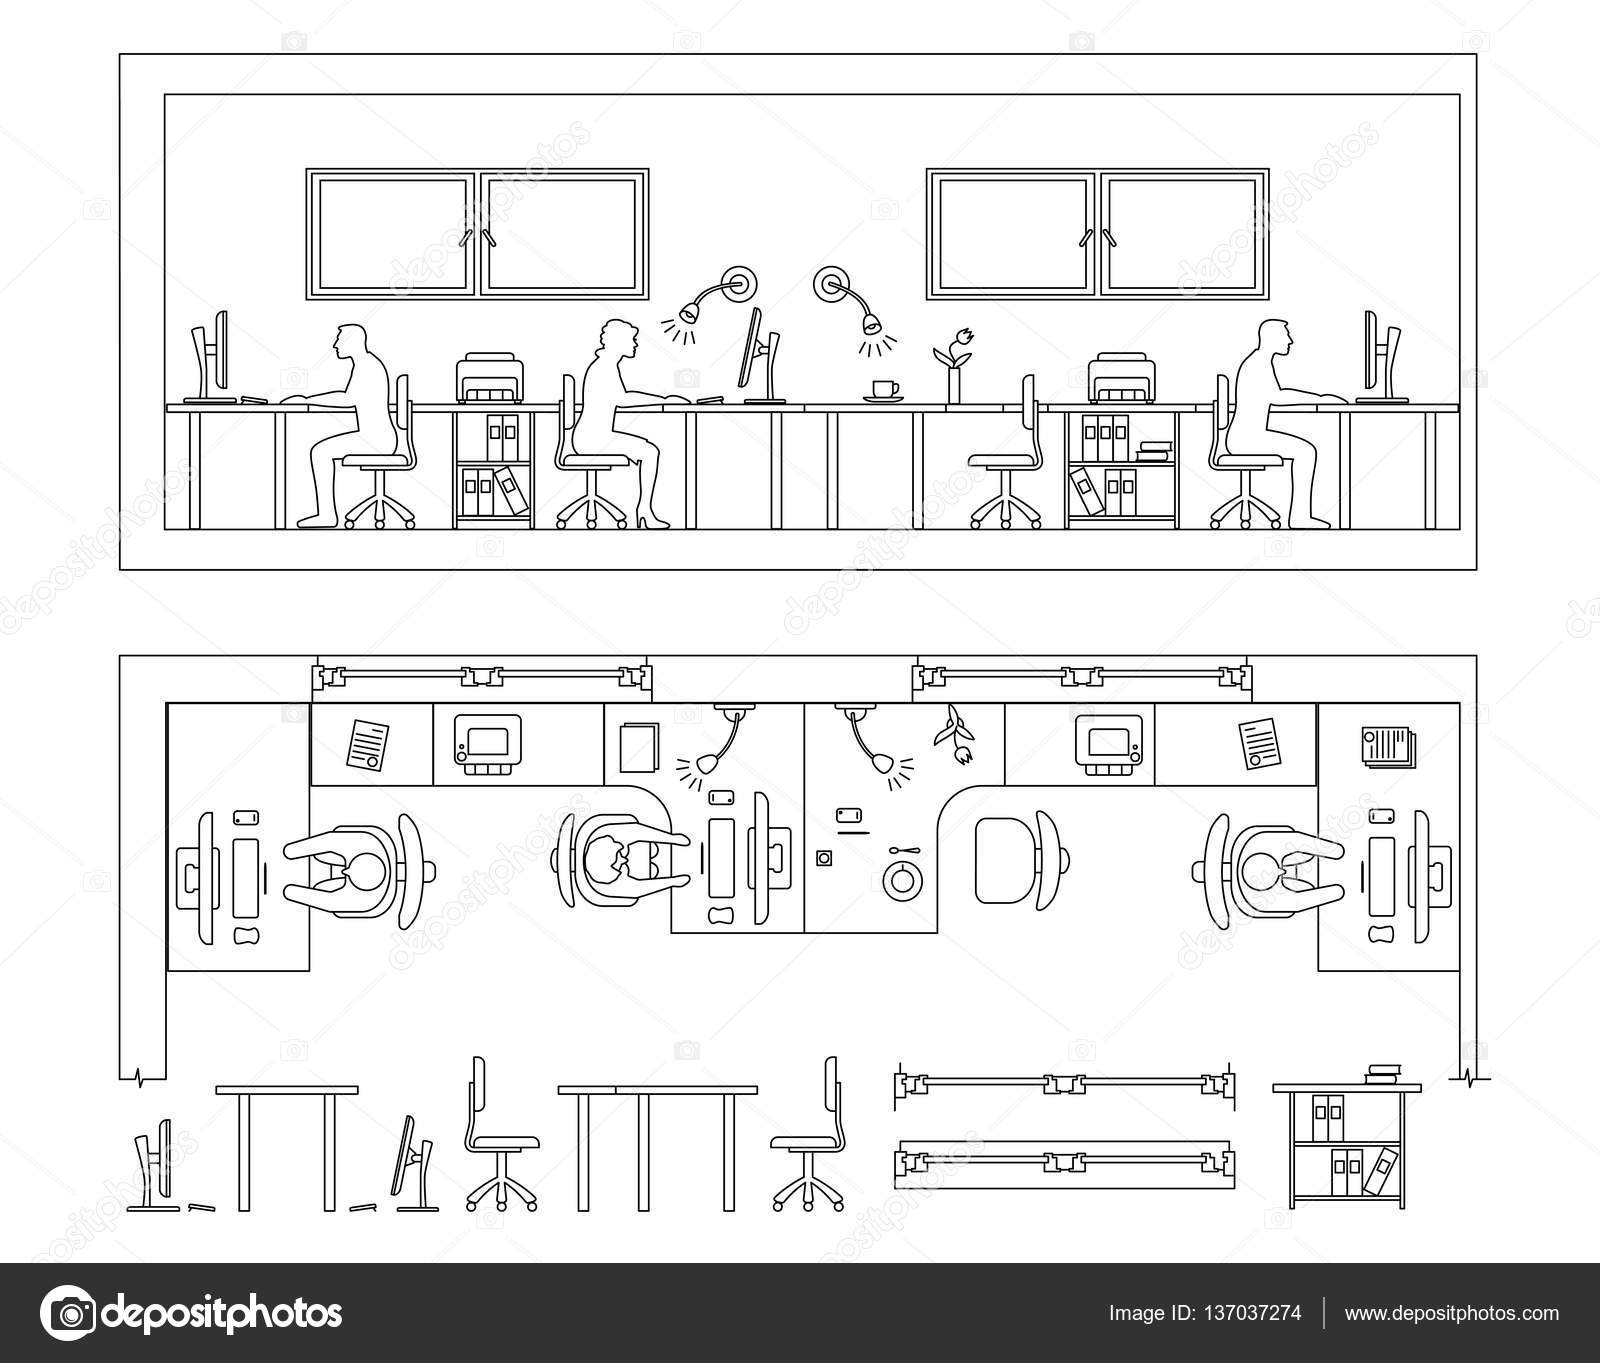 Architectural Set Of Furniture Design Elements For Floor Plan